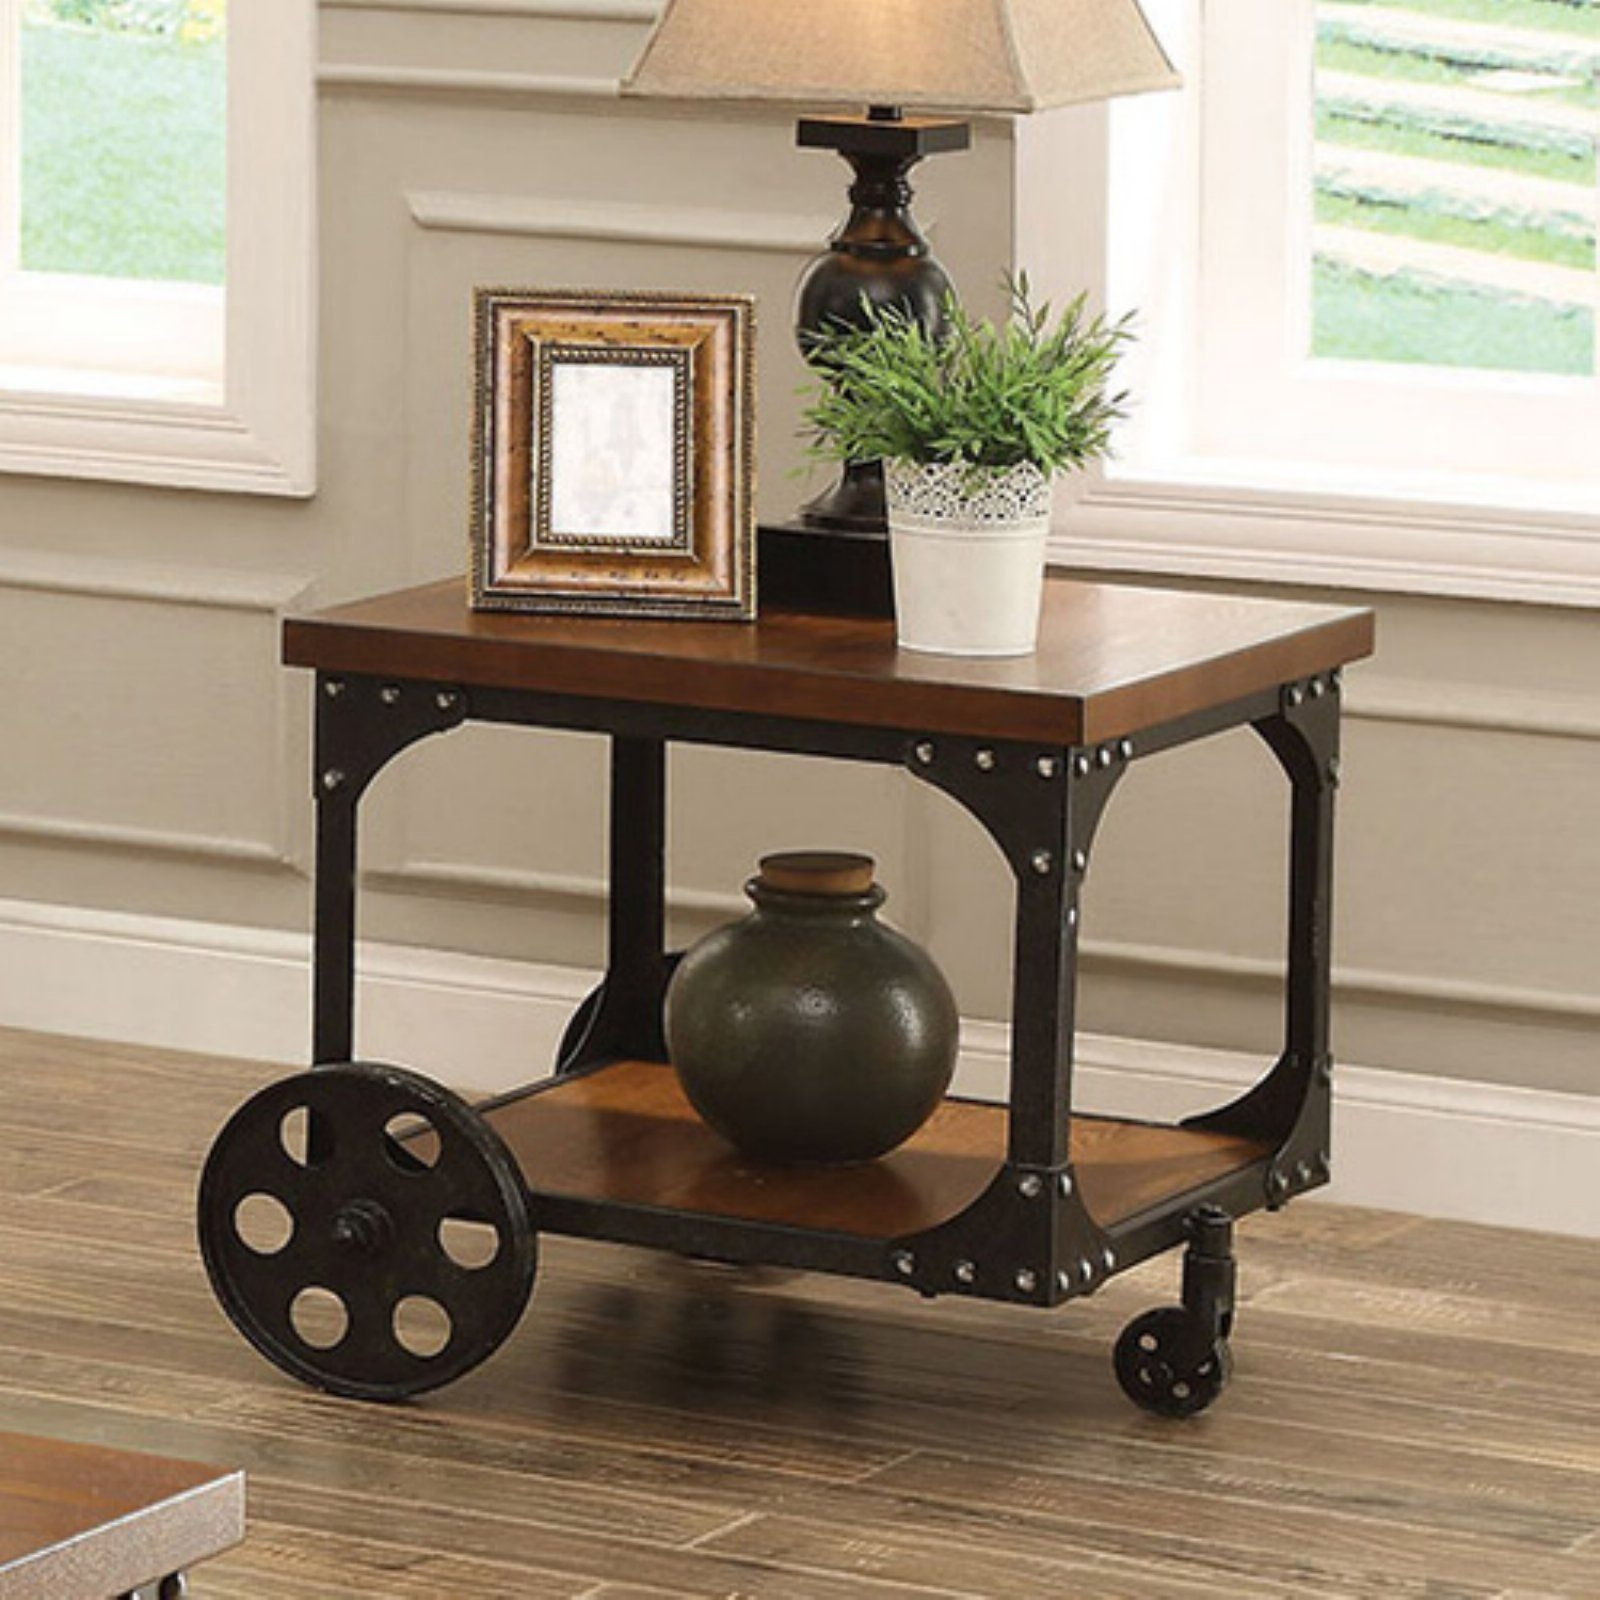 Coaster Furniture Wood End Table With Metal Casters In 2020 Vintage Industrial Furniture Coaster Furniture Wood End Tables